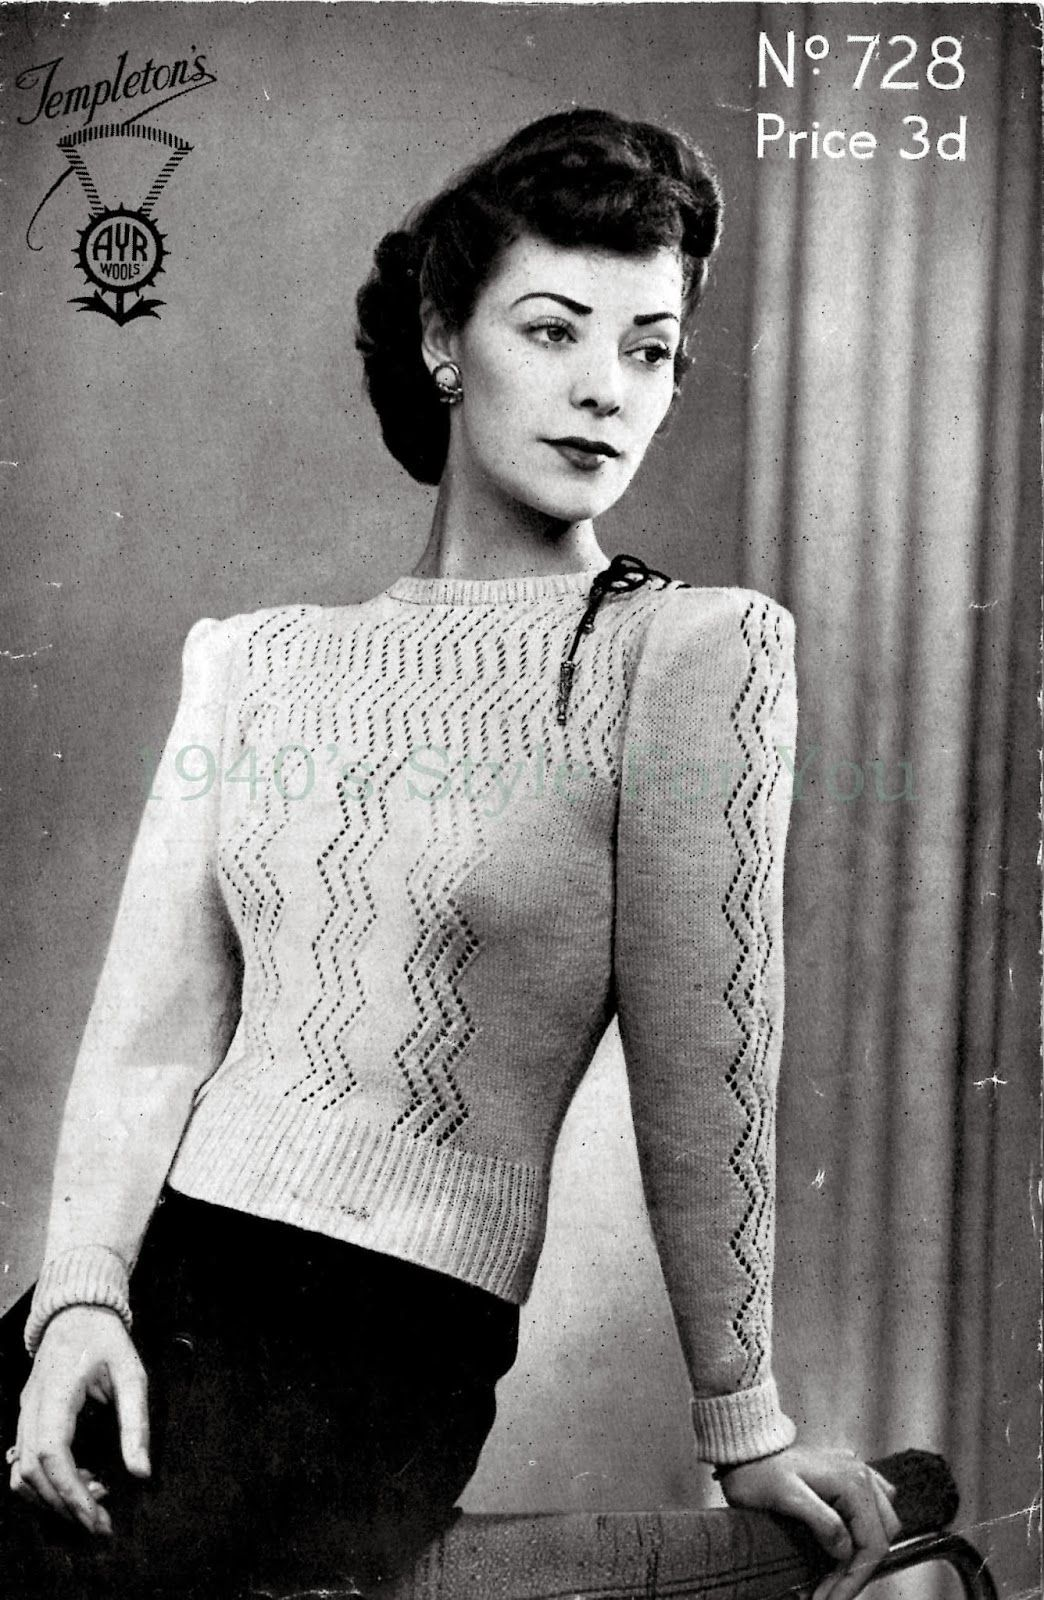 Gratis patroon free knitting pattern 1940s jumper templetons free knitting pattern 1940s jumper templetons 728 1940s style for bankloansurffo Image collections